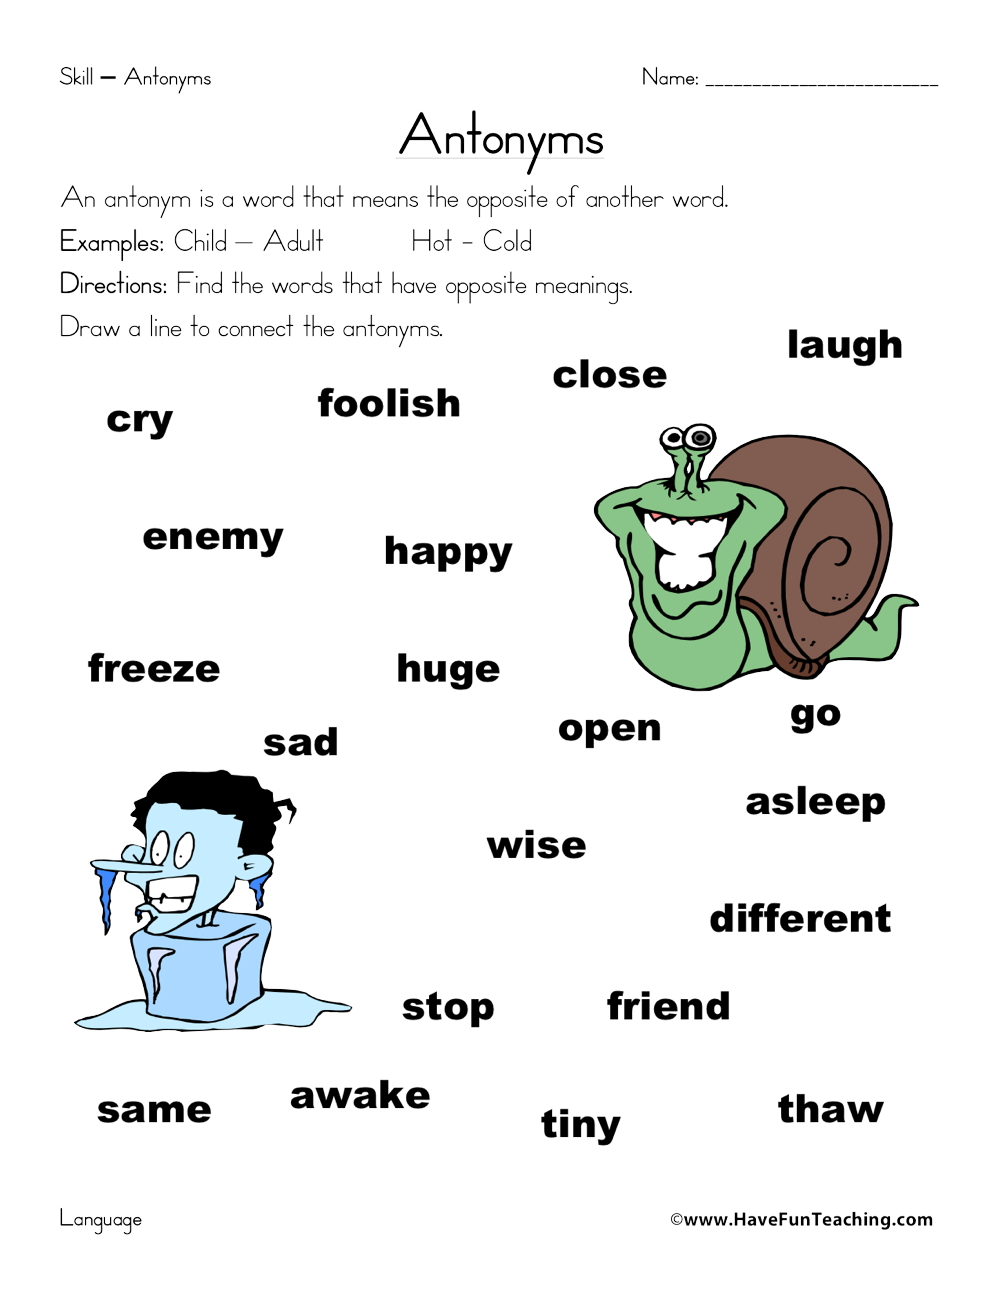 antonyms-worksheet-2